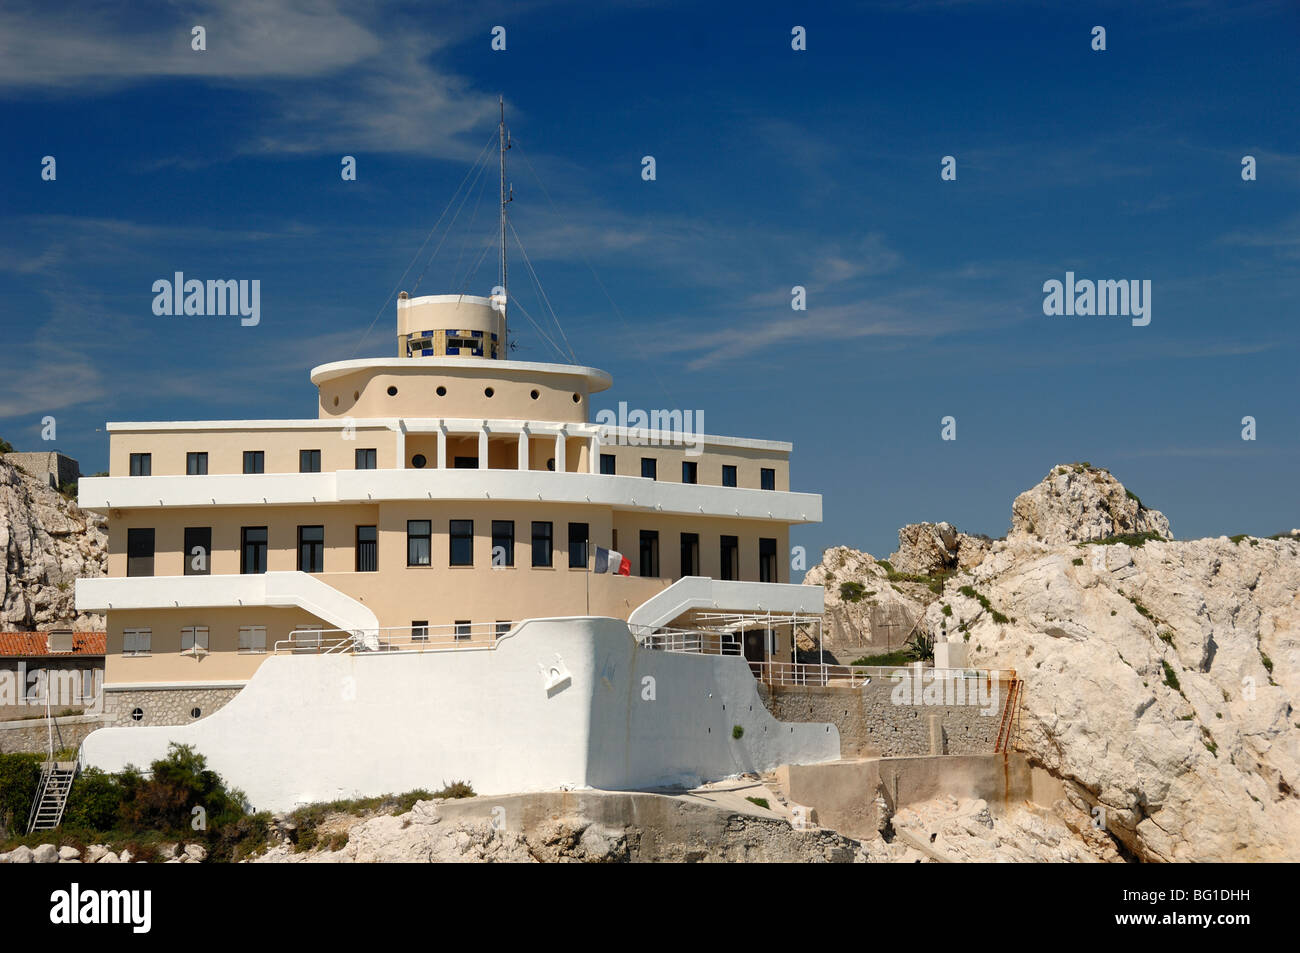 Boat-Shaped Pilotage Station Building in Shape of Ship or Boat, Île Ratonneau Island, Frioul, Marseille or - Stock Image